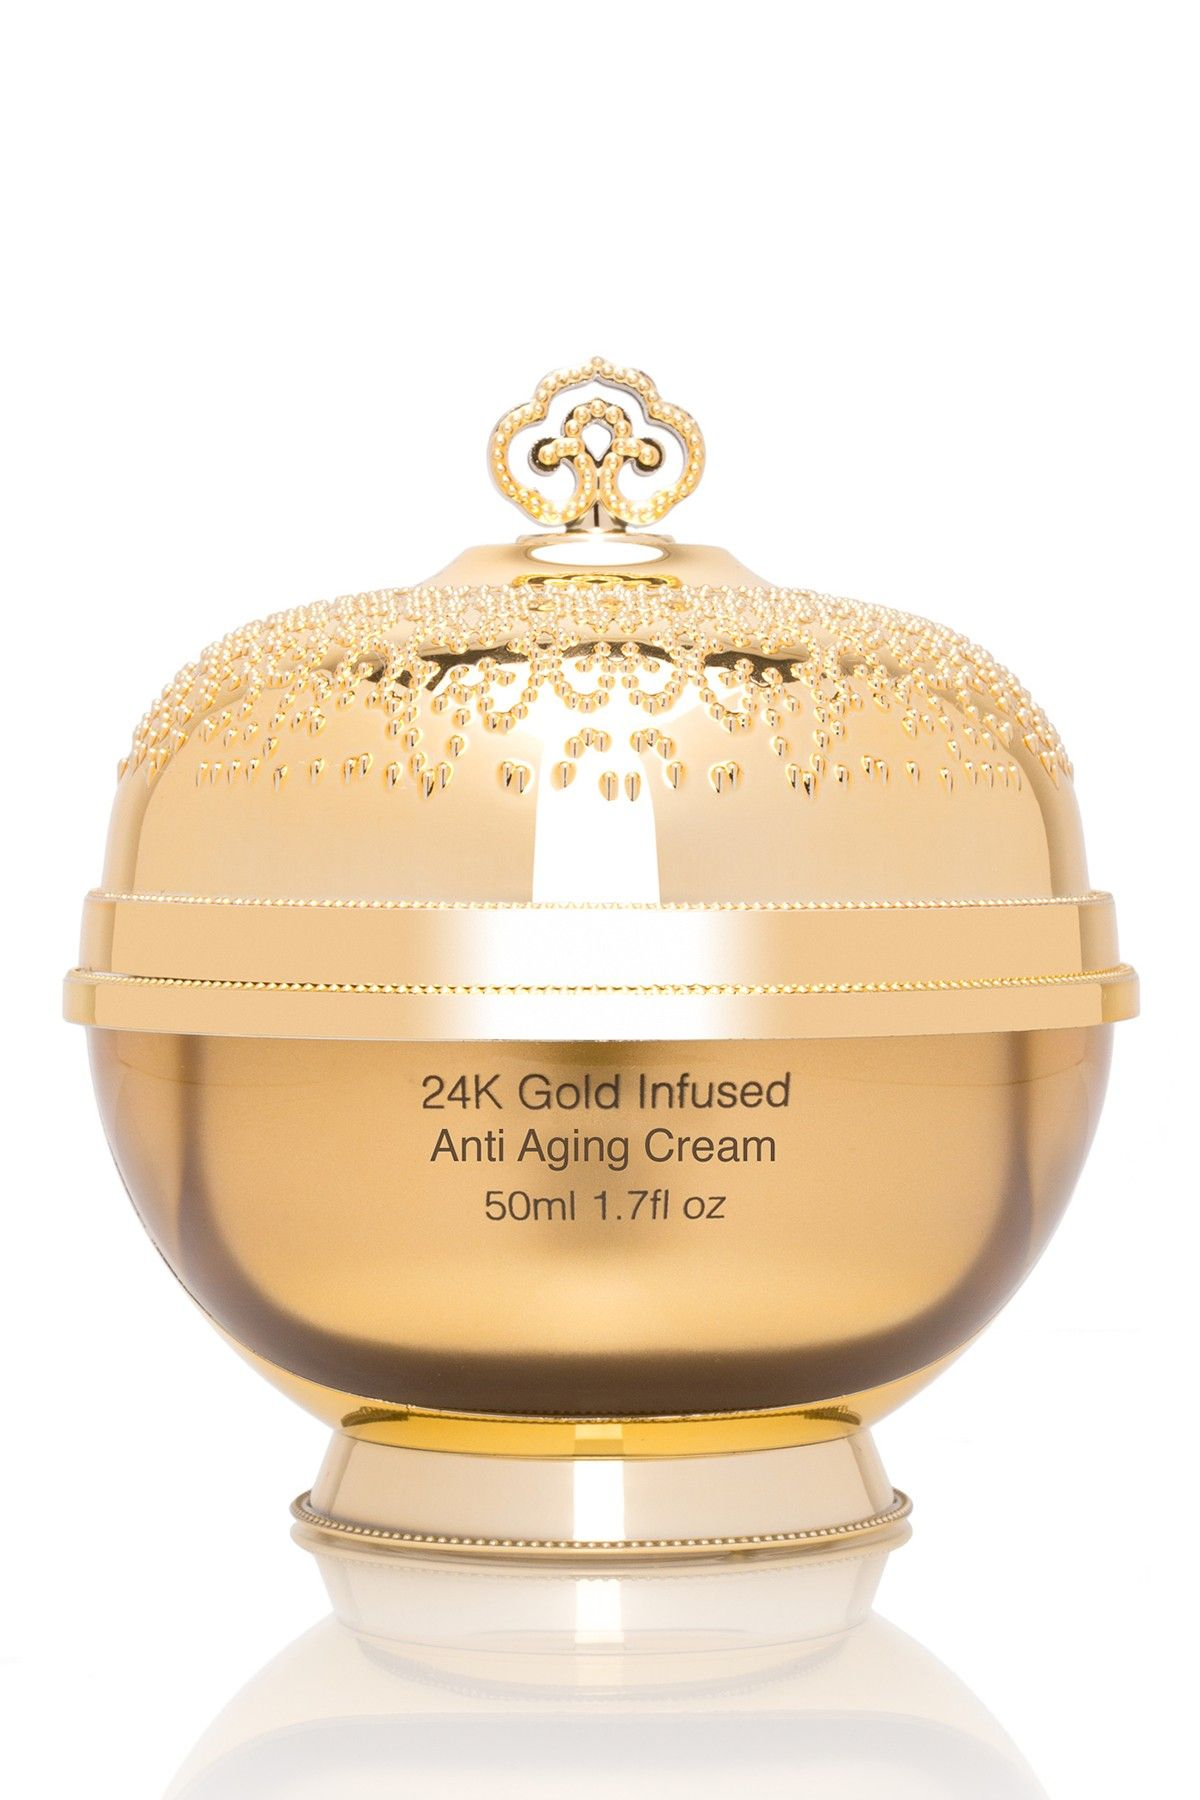 Le Royal 24k 24k Gold Infused Hydrating Anti Aging Cream Collagen Moisturizer Anti Aging Collagen Night Face Cream